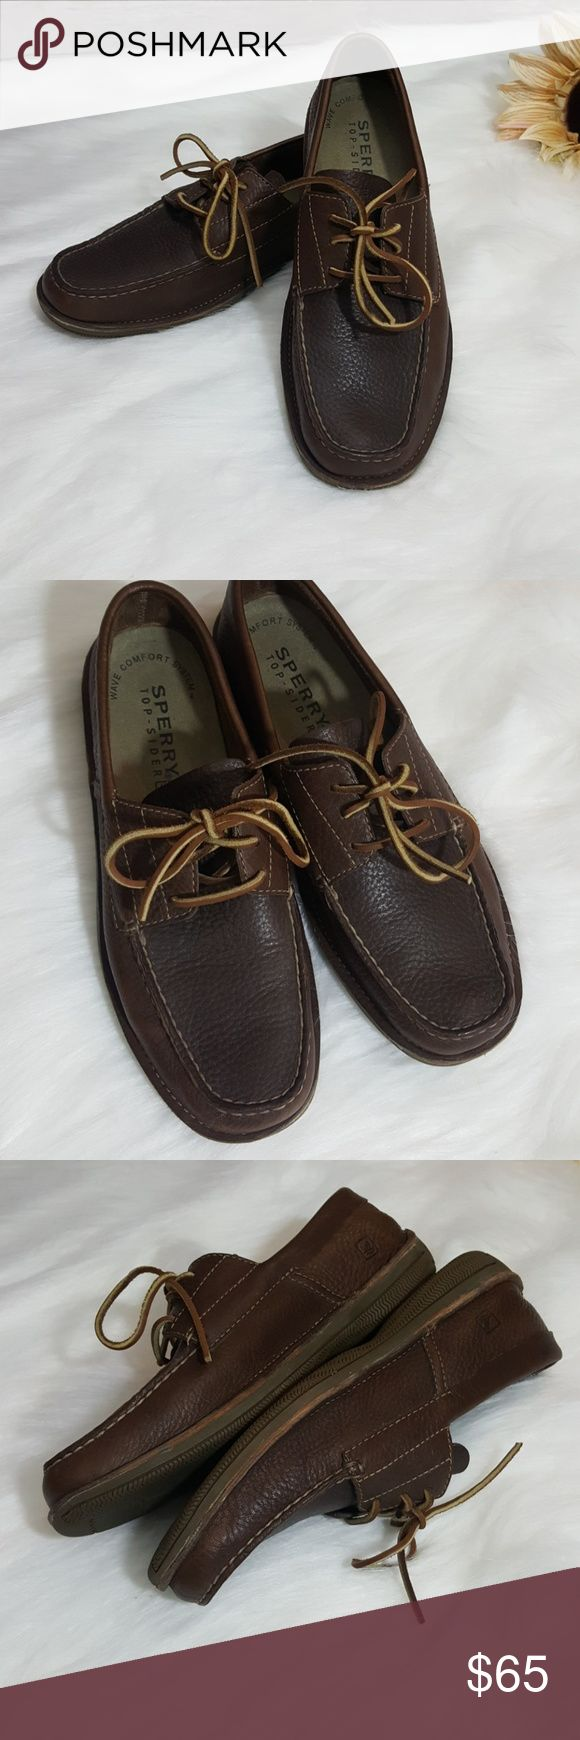 Sperry top siders men's loafers Sperry top siders men's loafers Wave comfort system Size 11 1/2 M Leather uppers  Worn twice - no box Excellent condition #270 Sperry Top-Sider Shoes Loafers & Slip-Ons